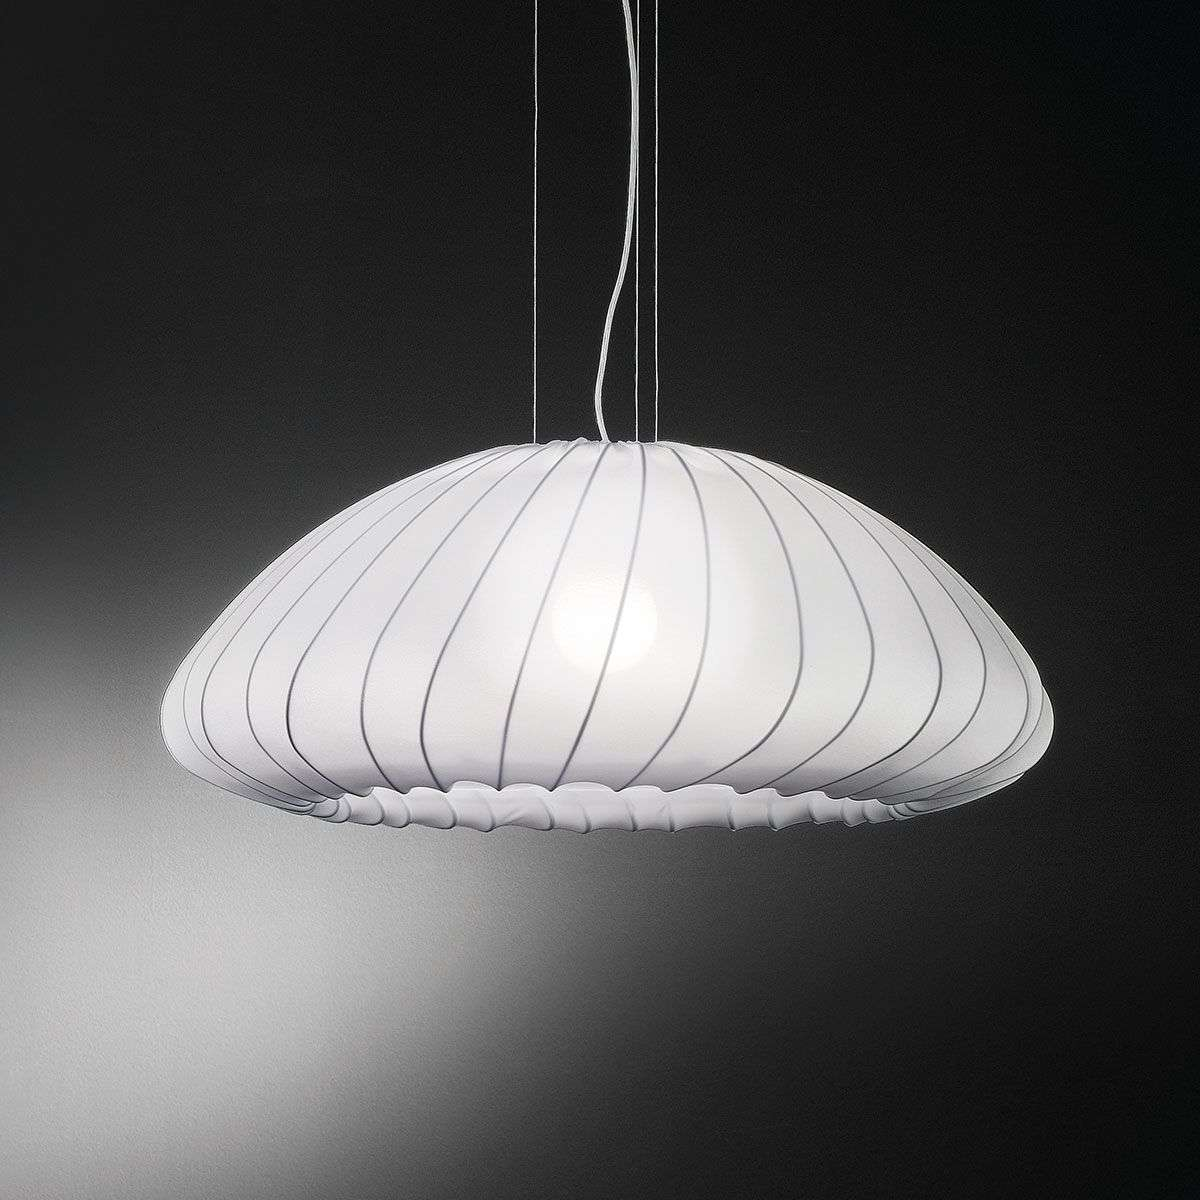 White pendant light Muse-1088016-31